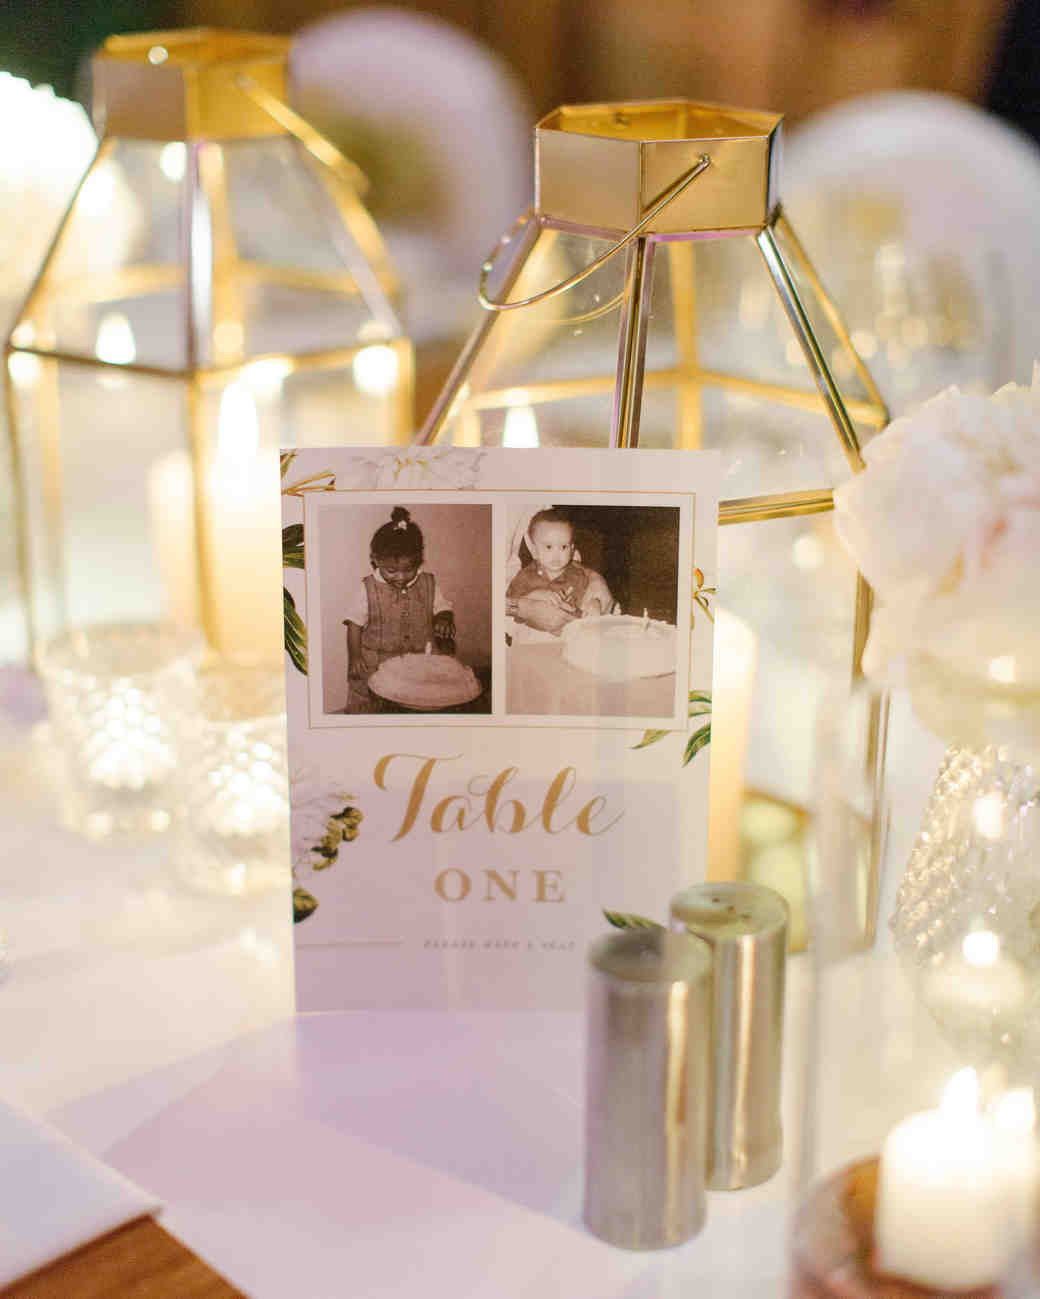 chloe shayo south africa couple reception table number photos lanterns candles